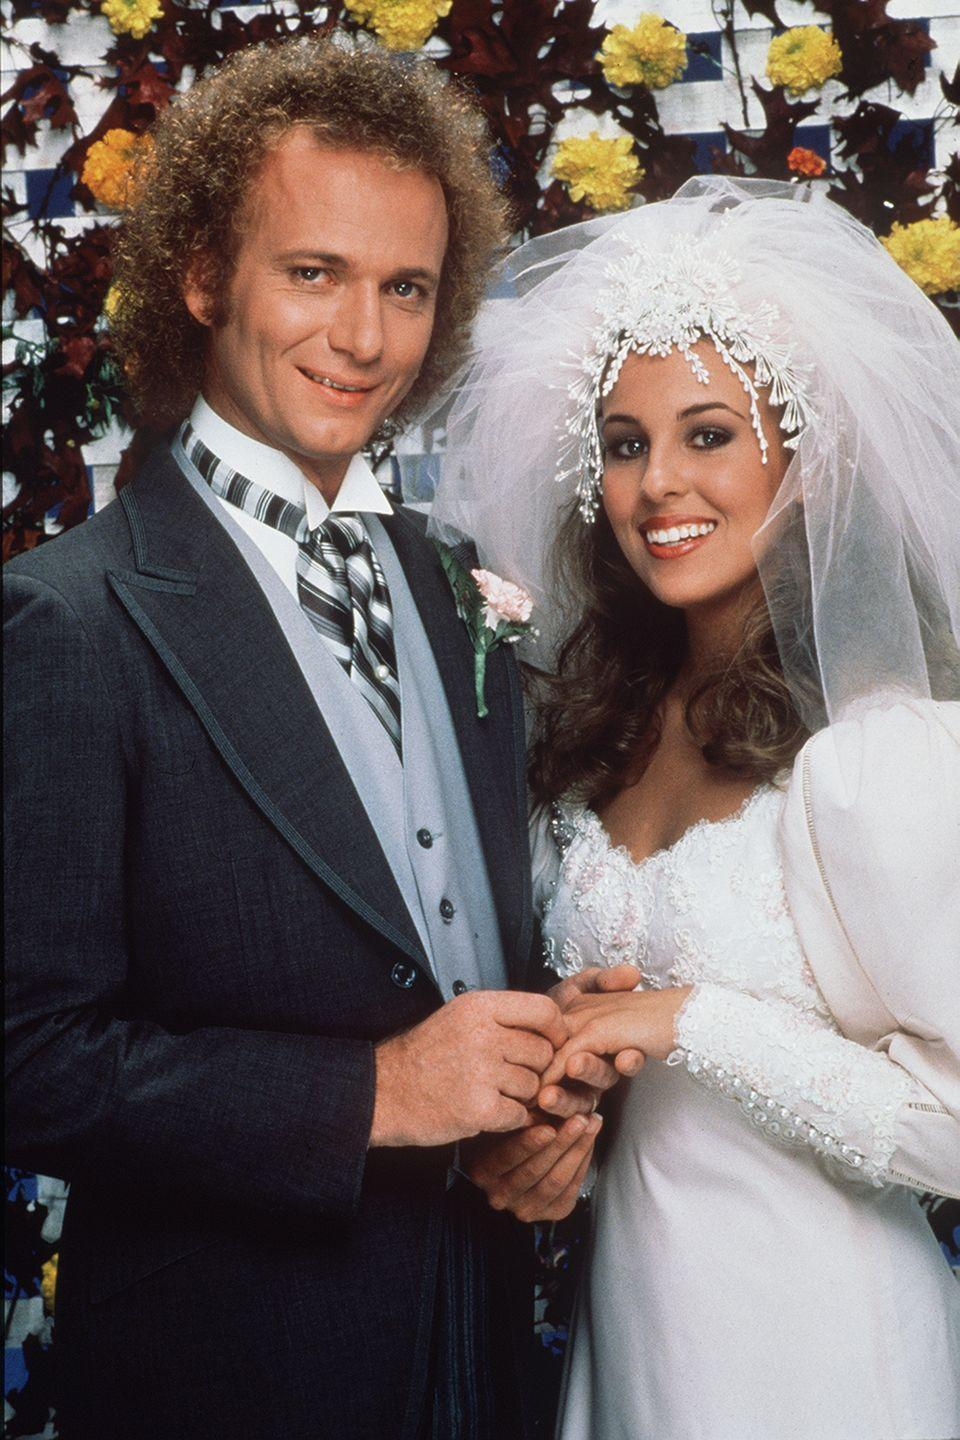 <p>The <em>General Hospital</em> episode featuring Luke and Laura's ceremony drew more viewers than Princess Diana's televised wedding to Prince Charles. For a fictional wedding this spectacular, Laura wore an ornate headpiece with lace and tulle veiling, a Victorian era-looking wedding dress with buttoned sleeves, and puffy shoulders – very fitting for the '80s. </p>